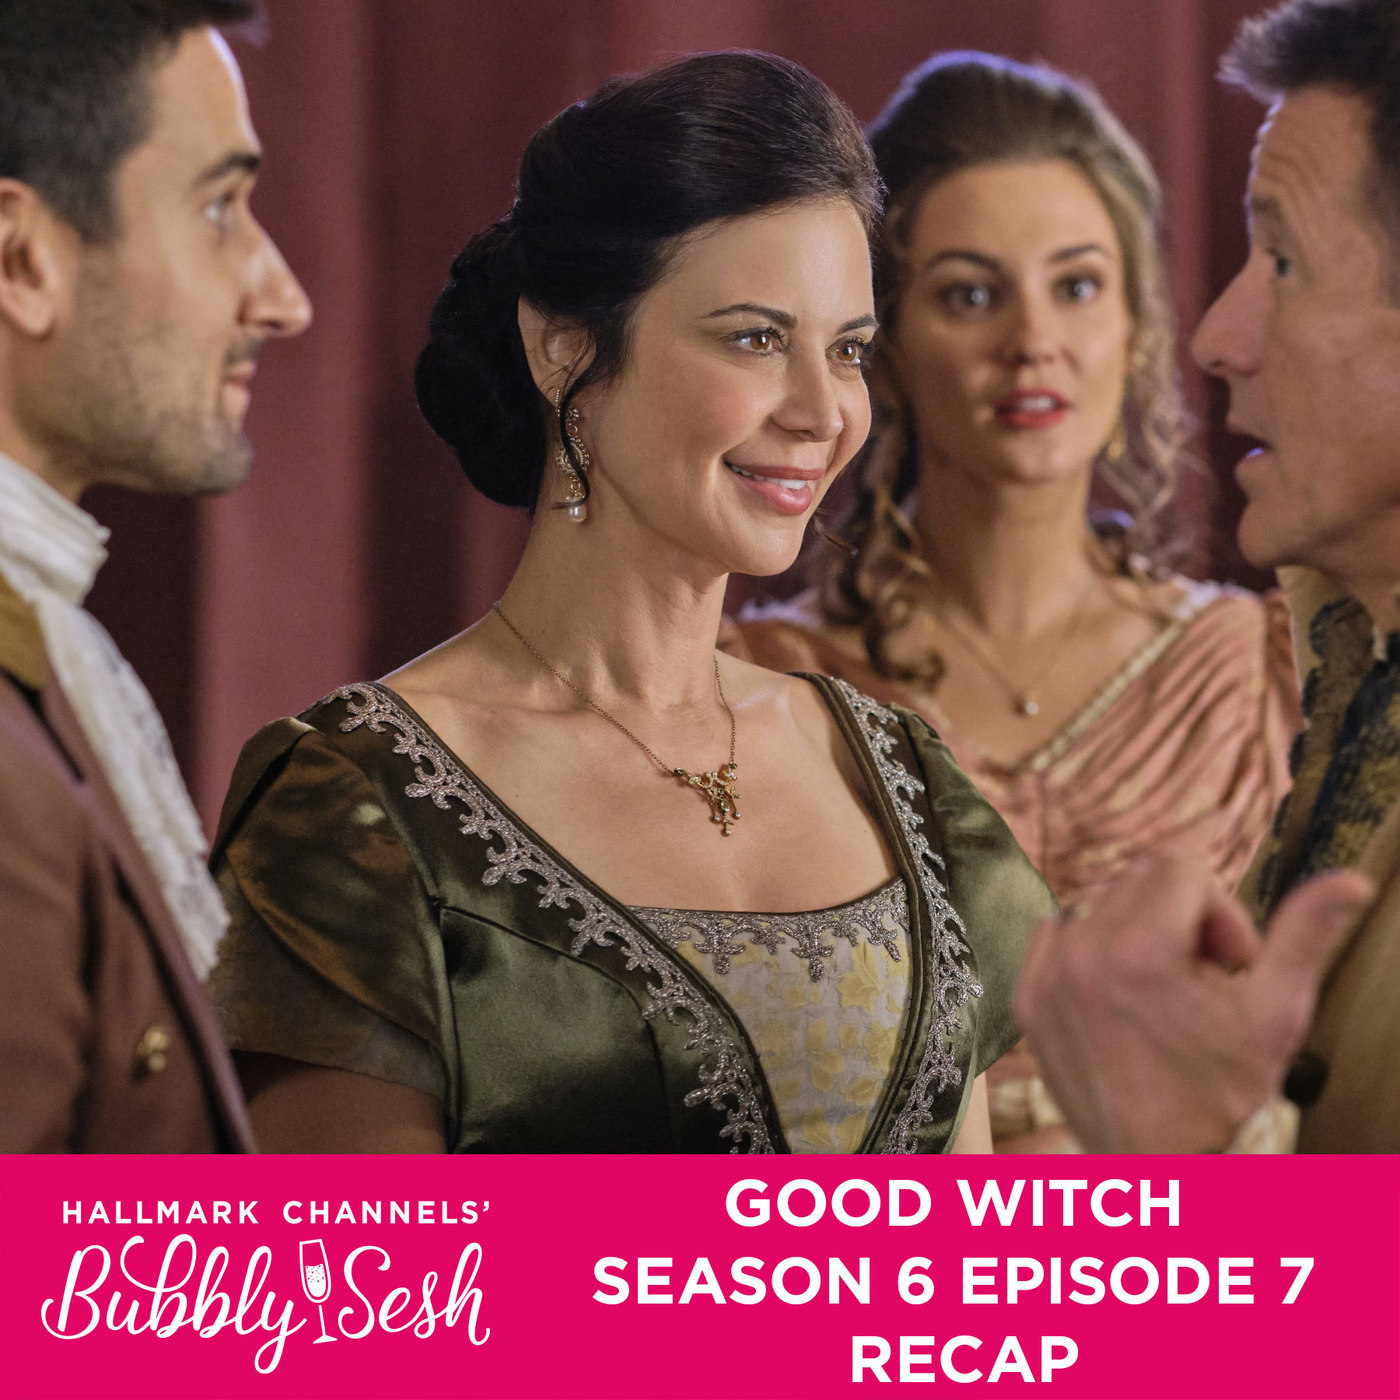 Good Witch Season 6, Episode 7 Recap